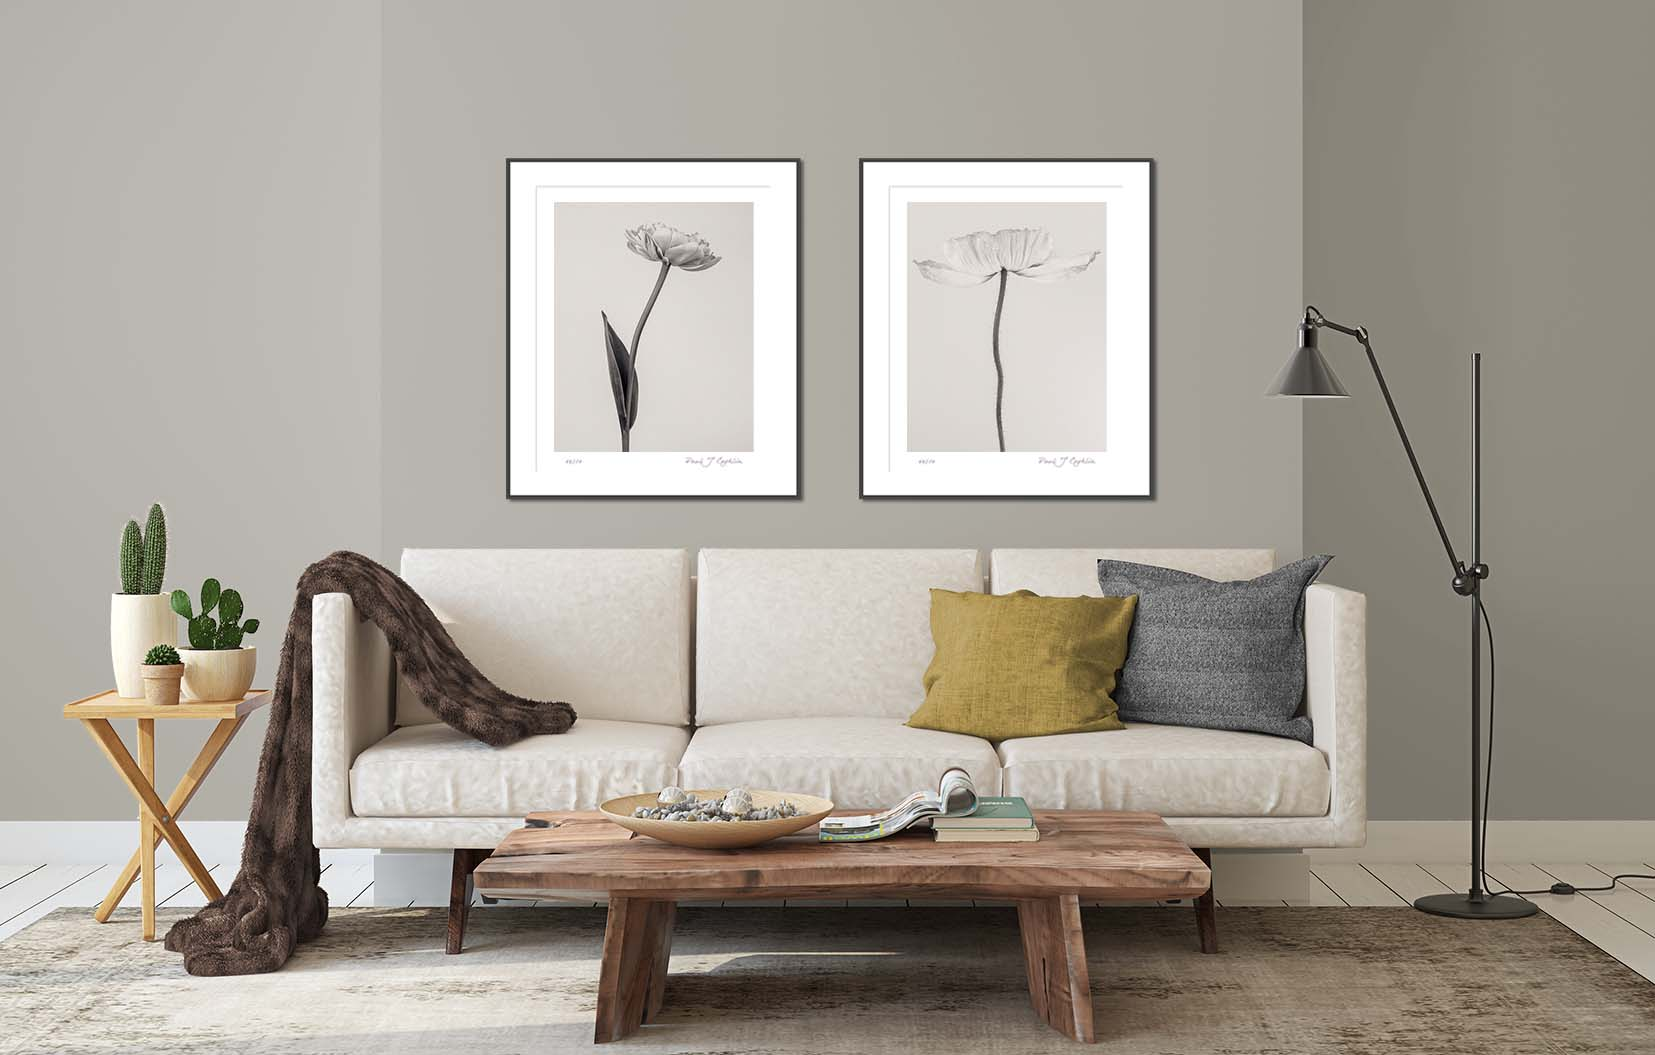 Papaver nudicaule (Icelandic Poppy) II & Tulipa 'Yellow Pompenette' II. Limited edition floral prints of a poppy and tulip by award-winning fine art photographer Paul Coghlin FBIPP.